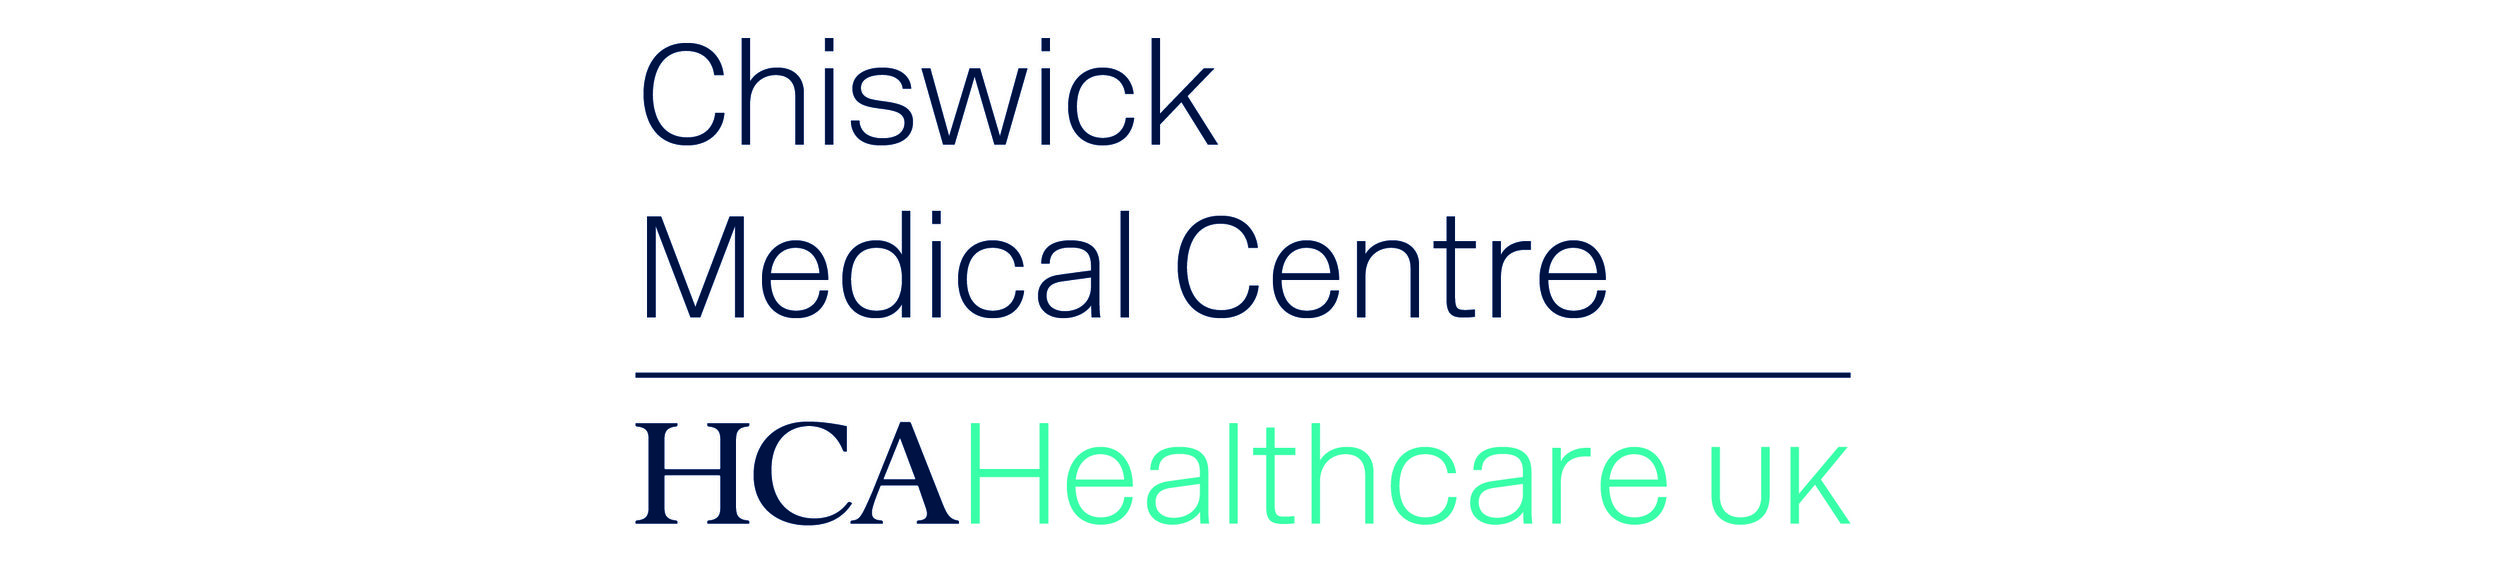 Chiswick Medical Centre -